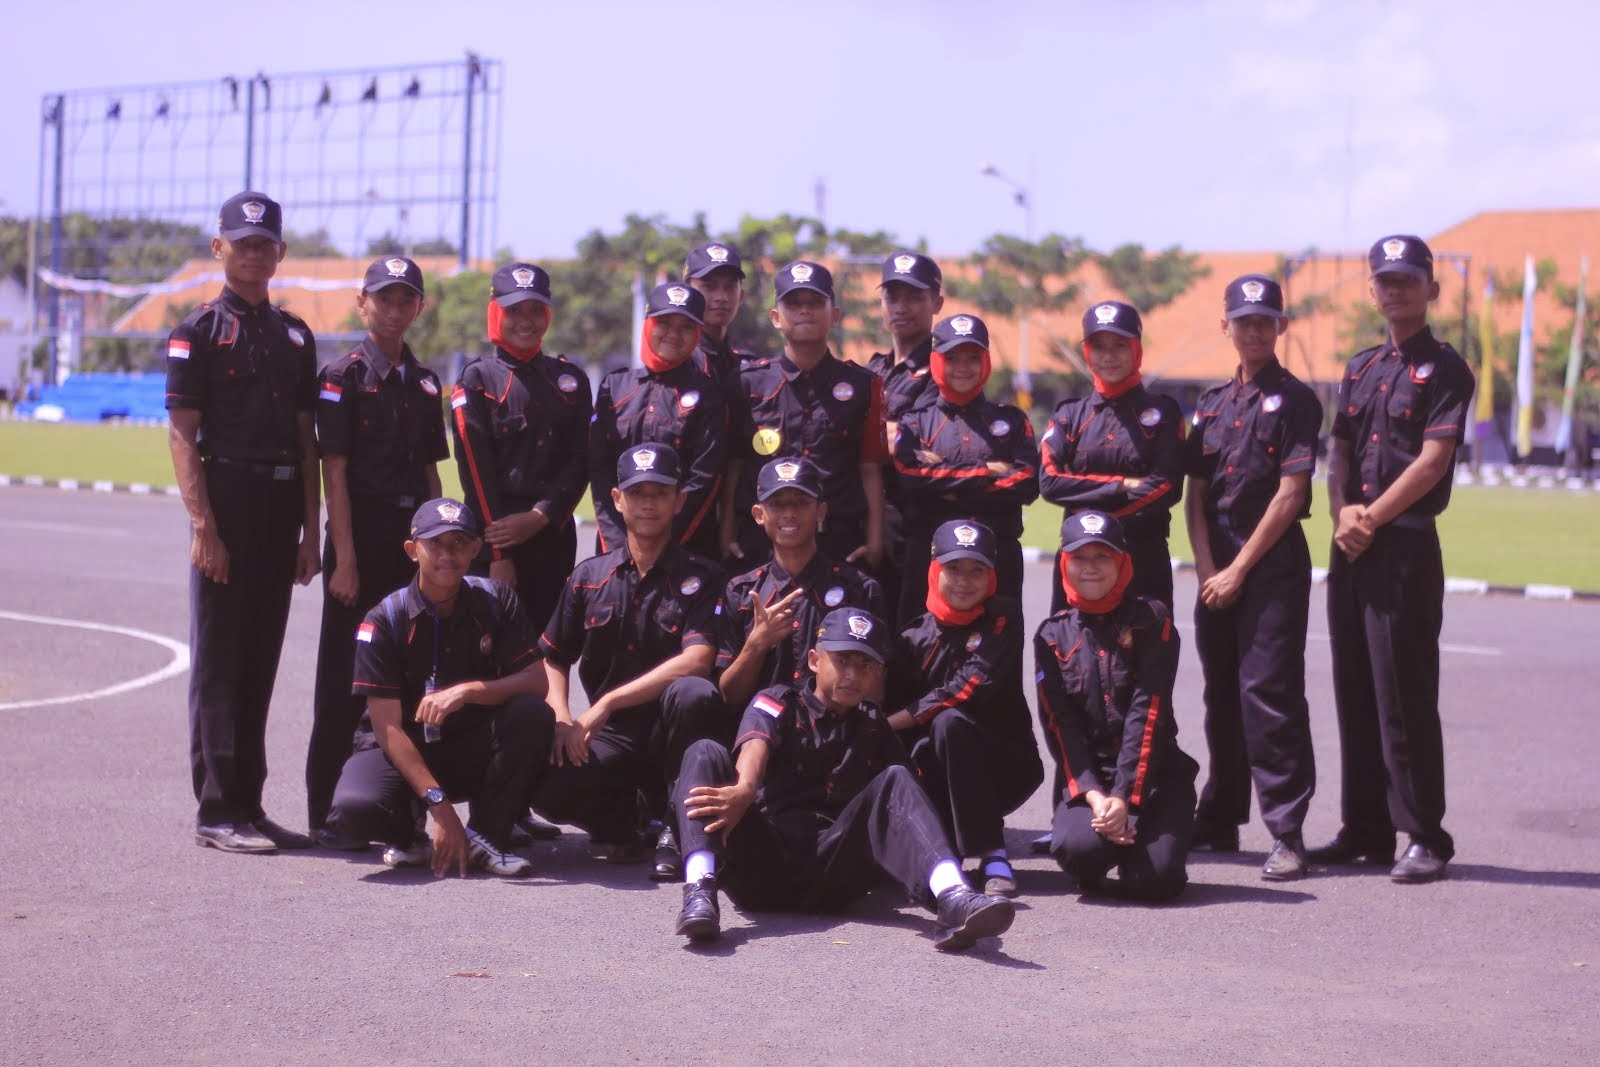 Surabaya with Flag Force (Paskibra)